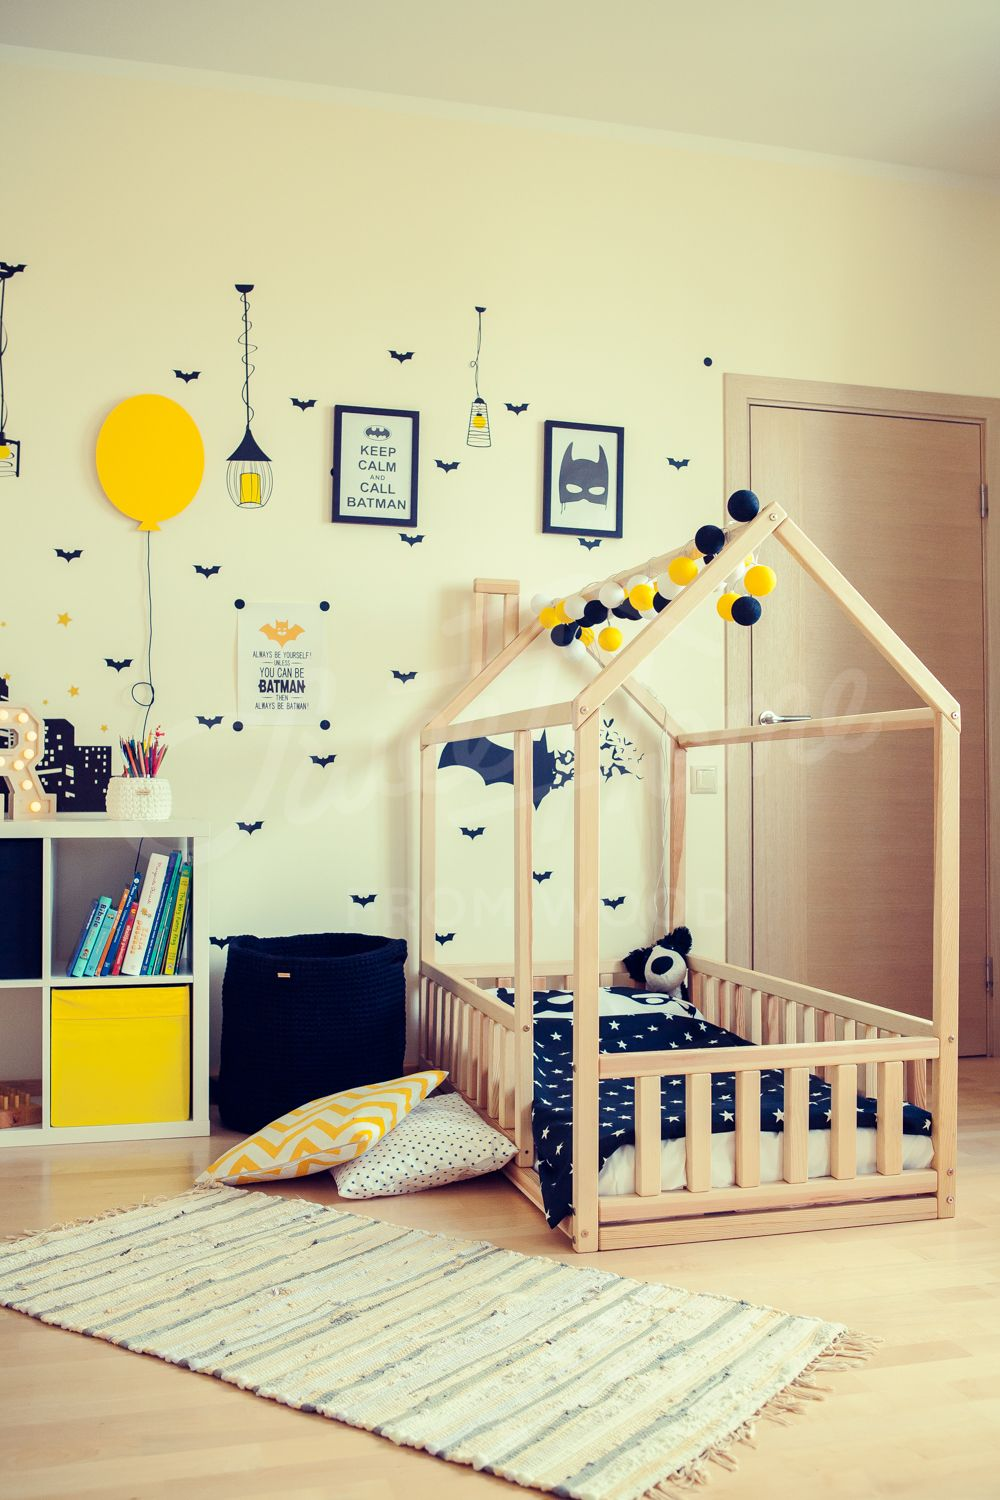 boys room toddler bed twin size baby bed children bed montessori wooden